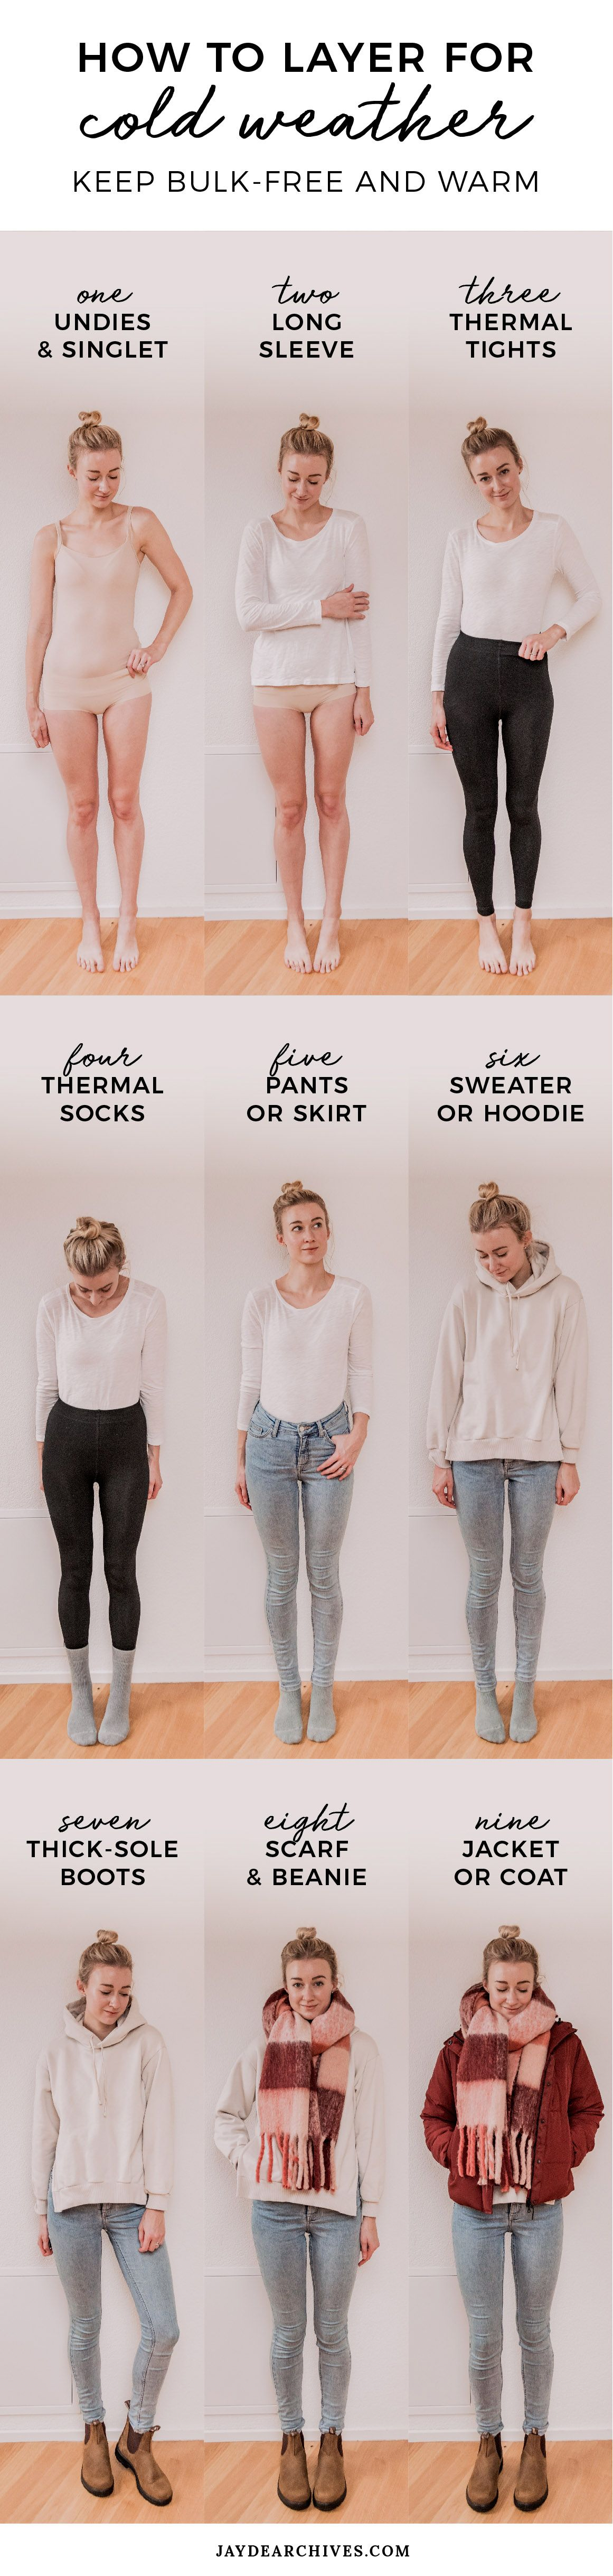 How to Layer Clothes for Cold Weather: Bulk-Free and Warm | Jayde Archives